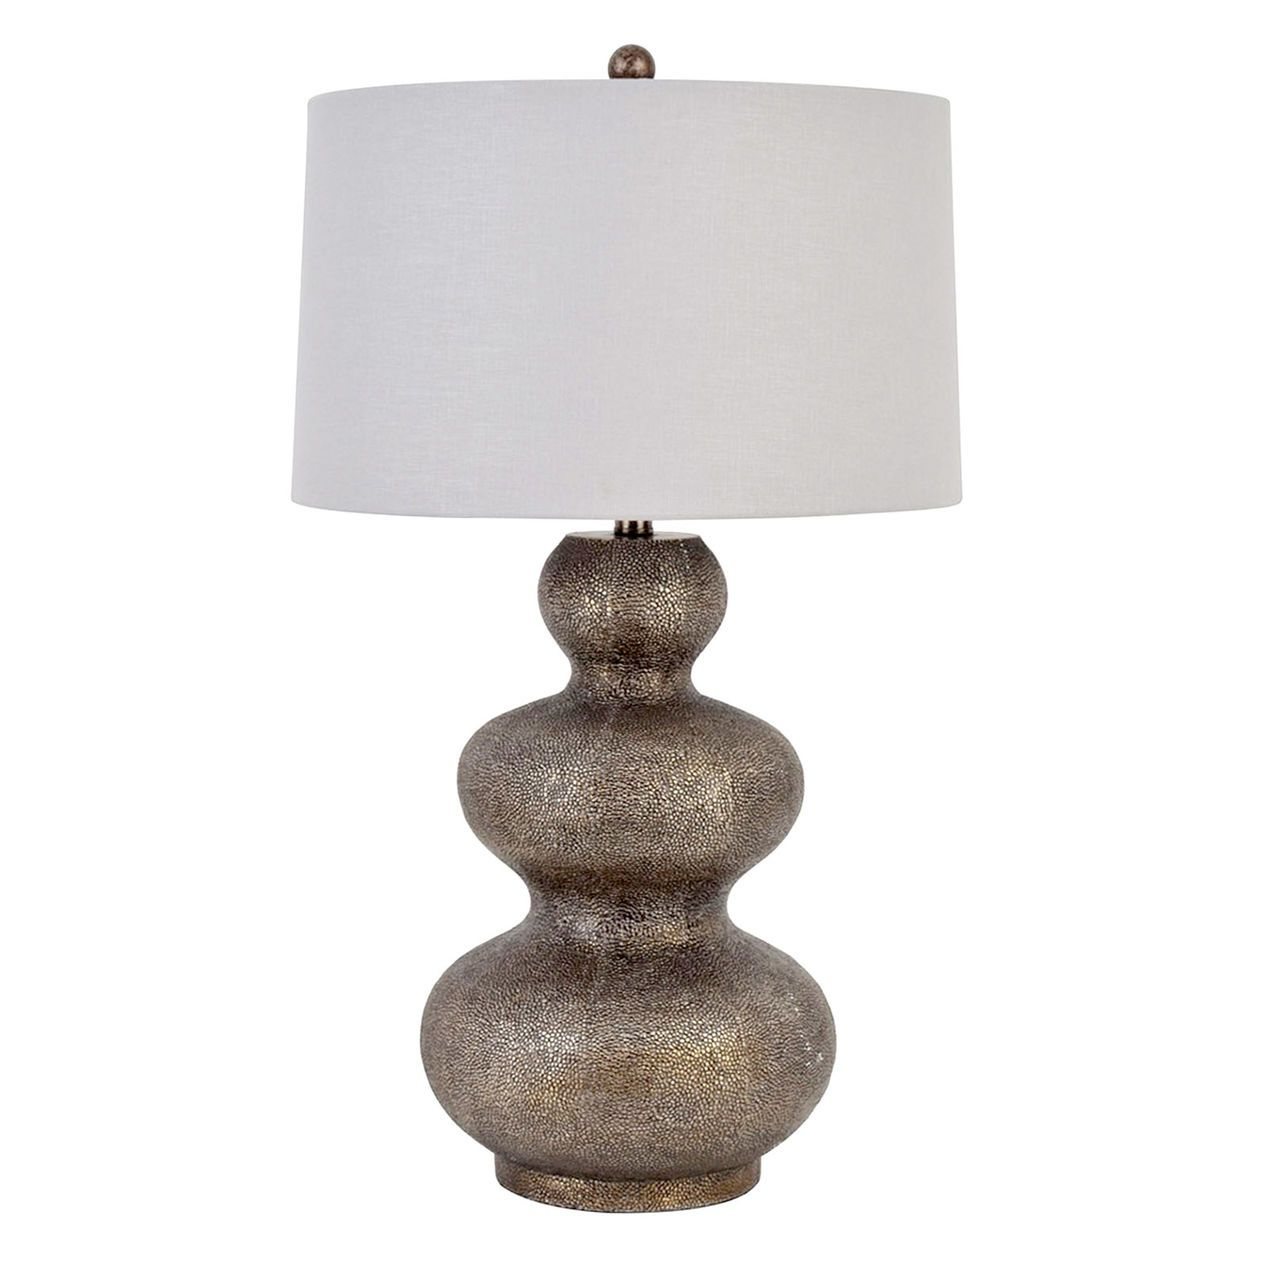 3 Tier Bronze Ball Table Lamp Shade Sold Separately With Images Lamp Table Lamp Table Lamp Shades